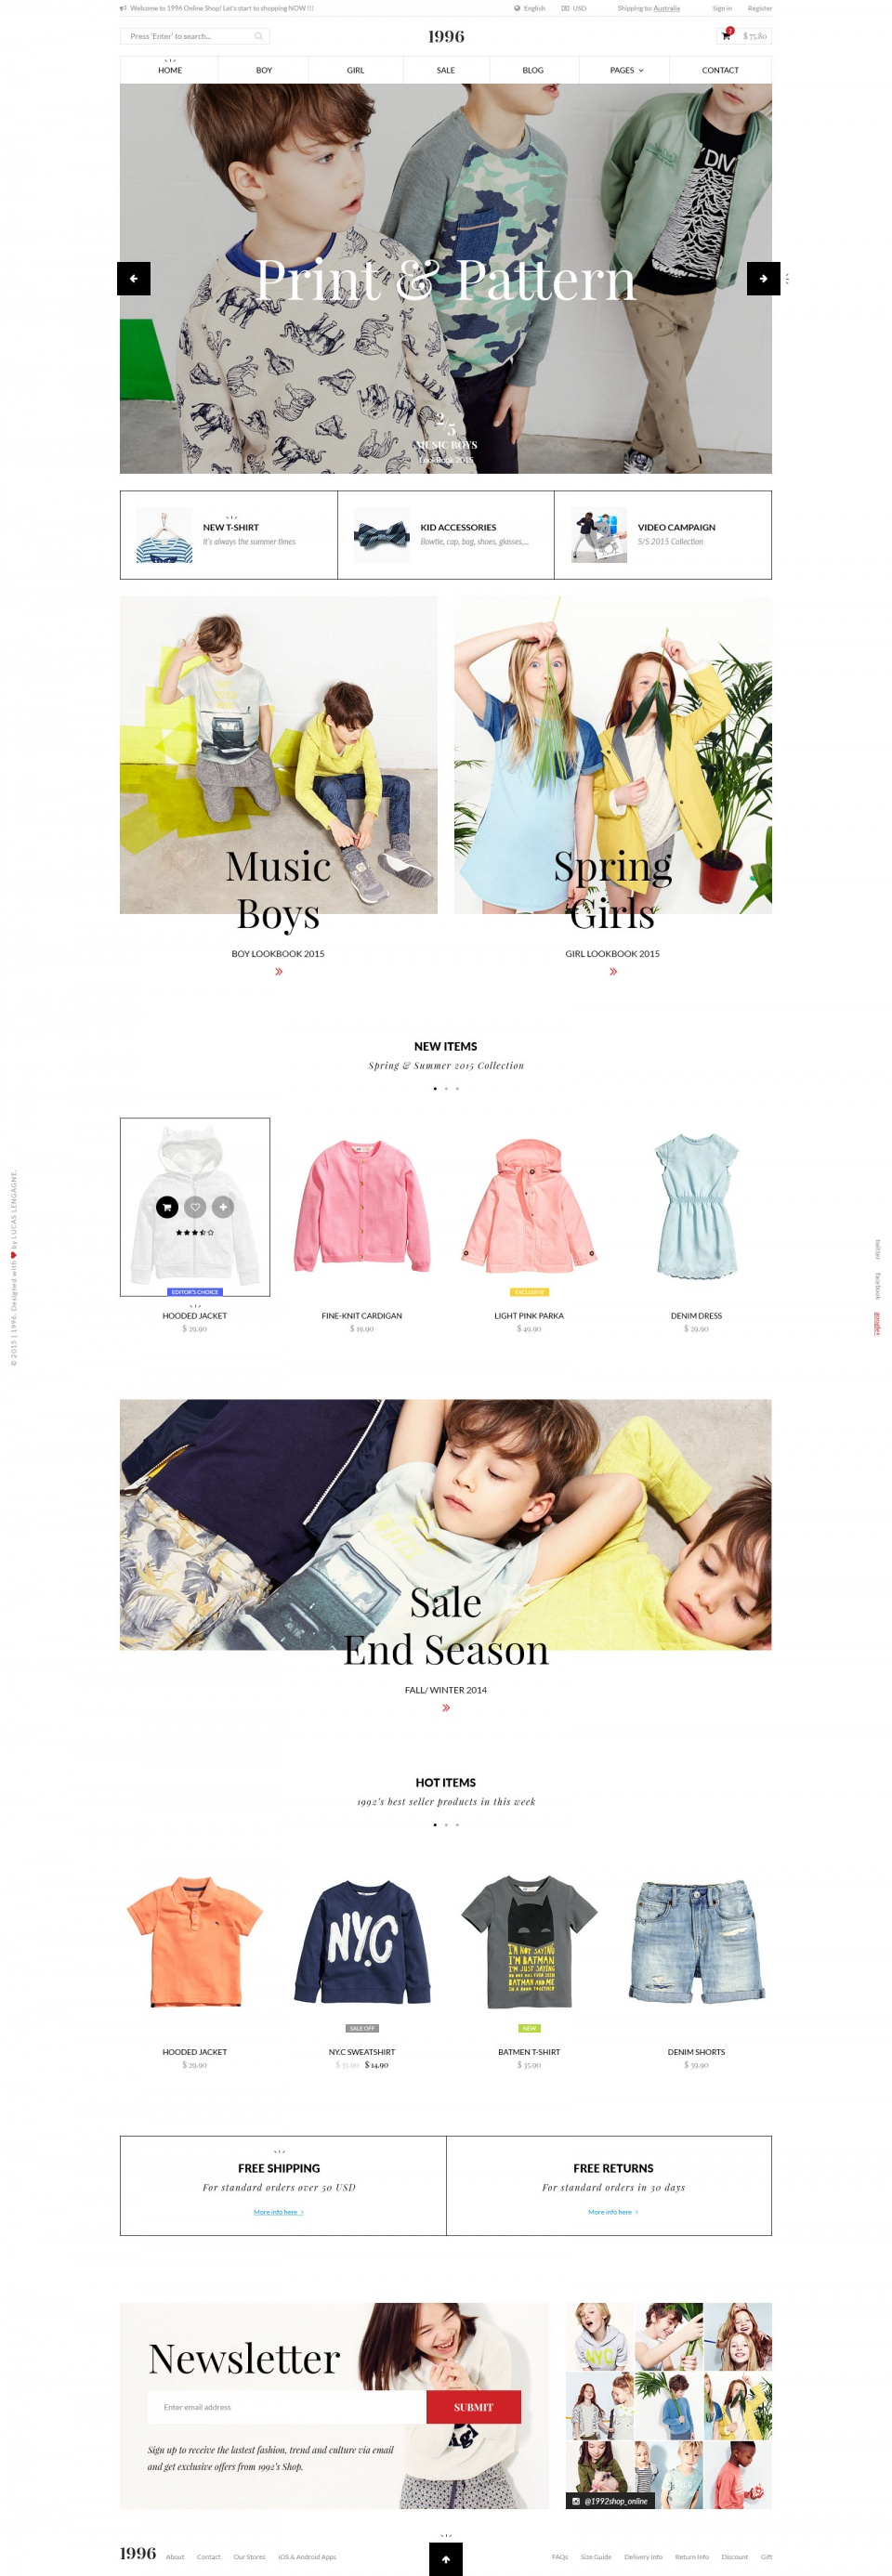 Web Design - showcase